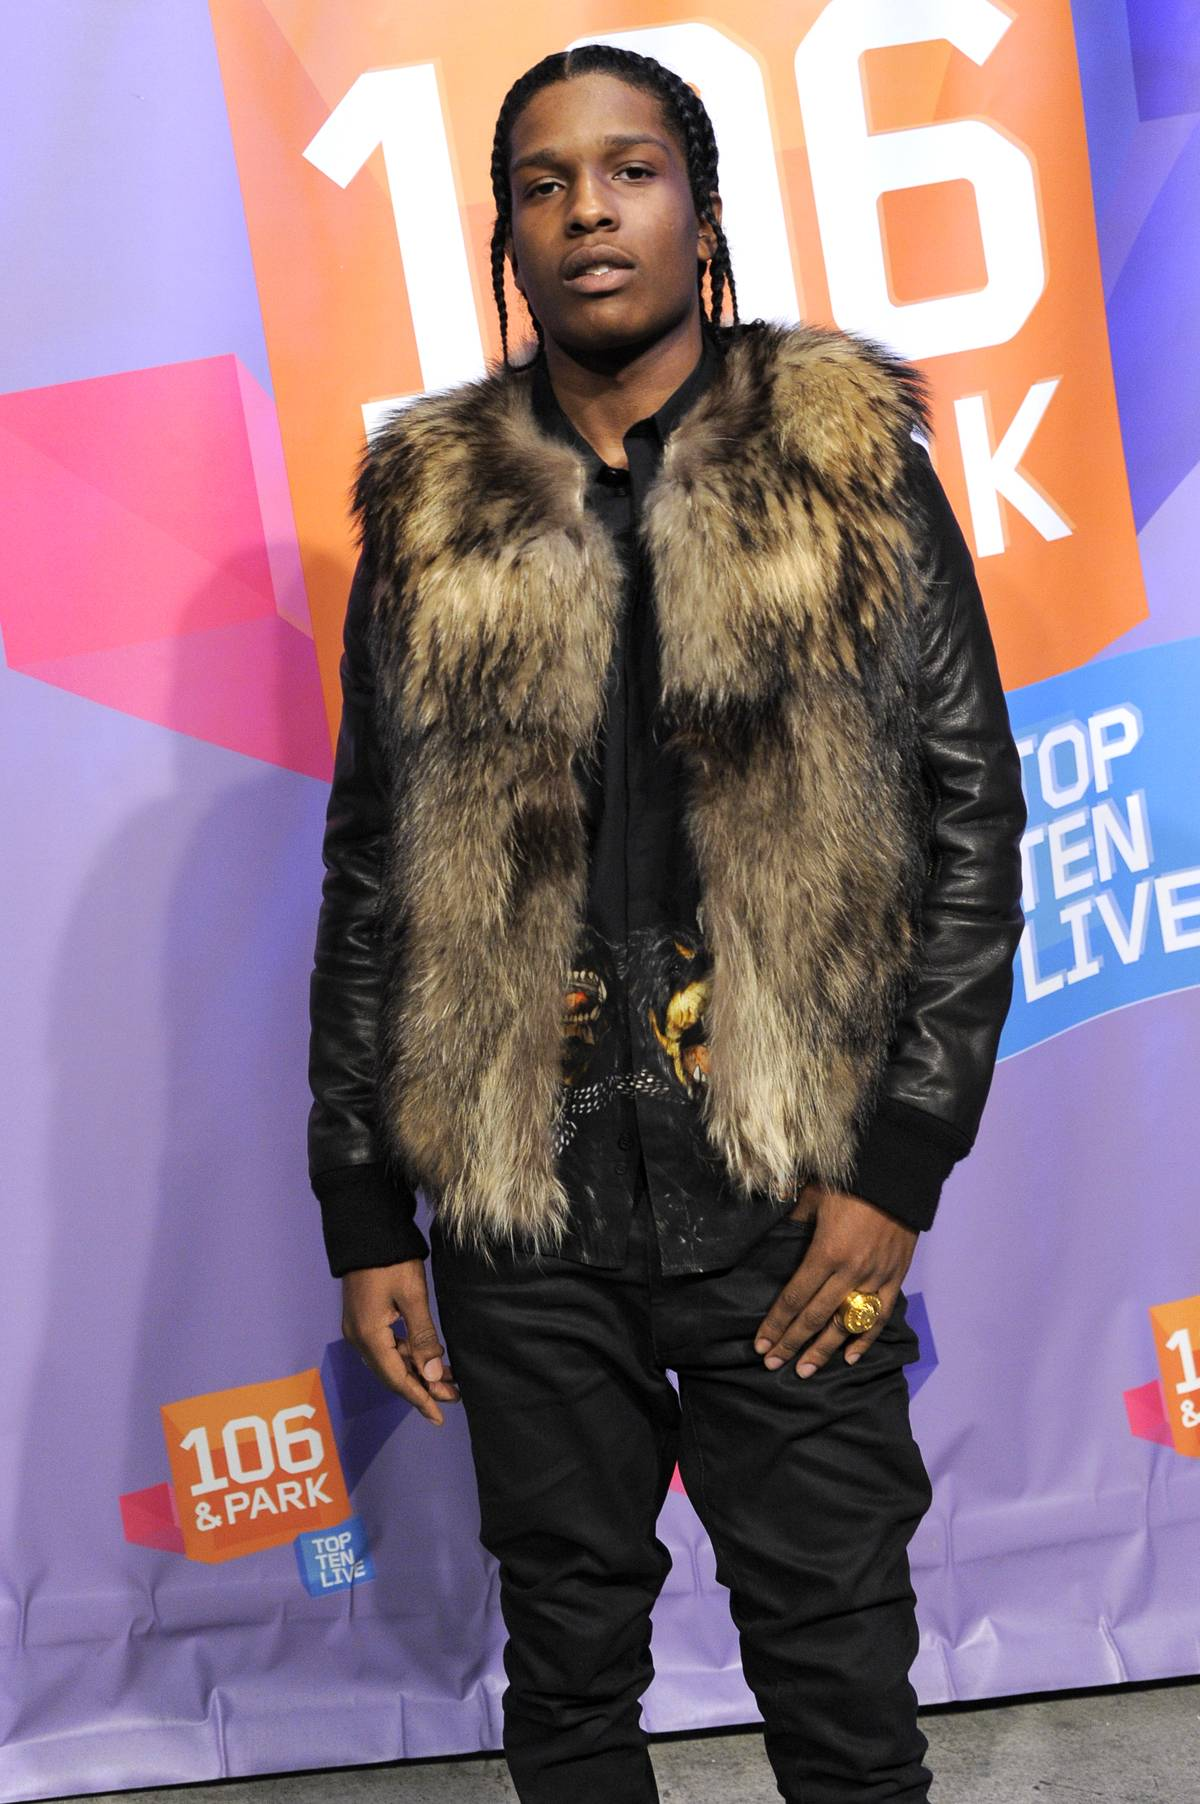 10 Things You Should Know About A$AP Rocky - Rocky counts Harlem icons Dipset as a huge influence on his music, but also looks outside of the city for inspiration?to Bone Thug N Harmony's flow, to UGK's funk edge, and Three Six Mafia's syrupy sonics. (Photo: John Ricard / BET)